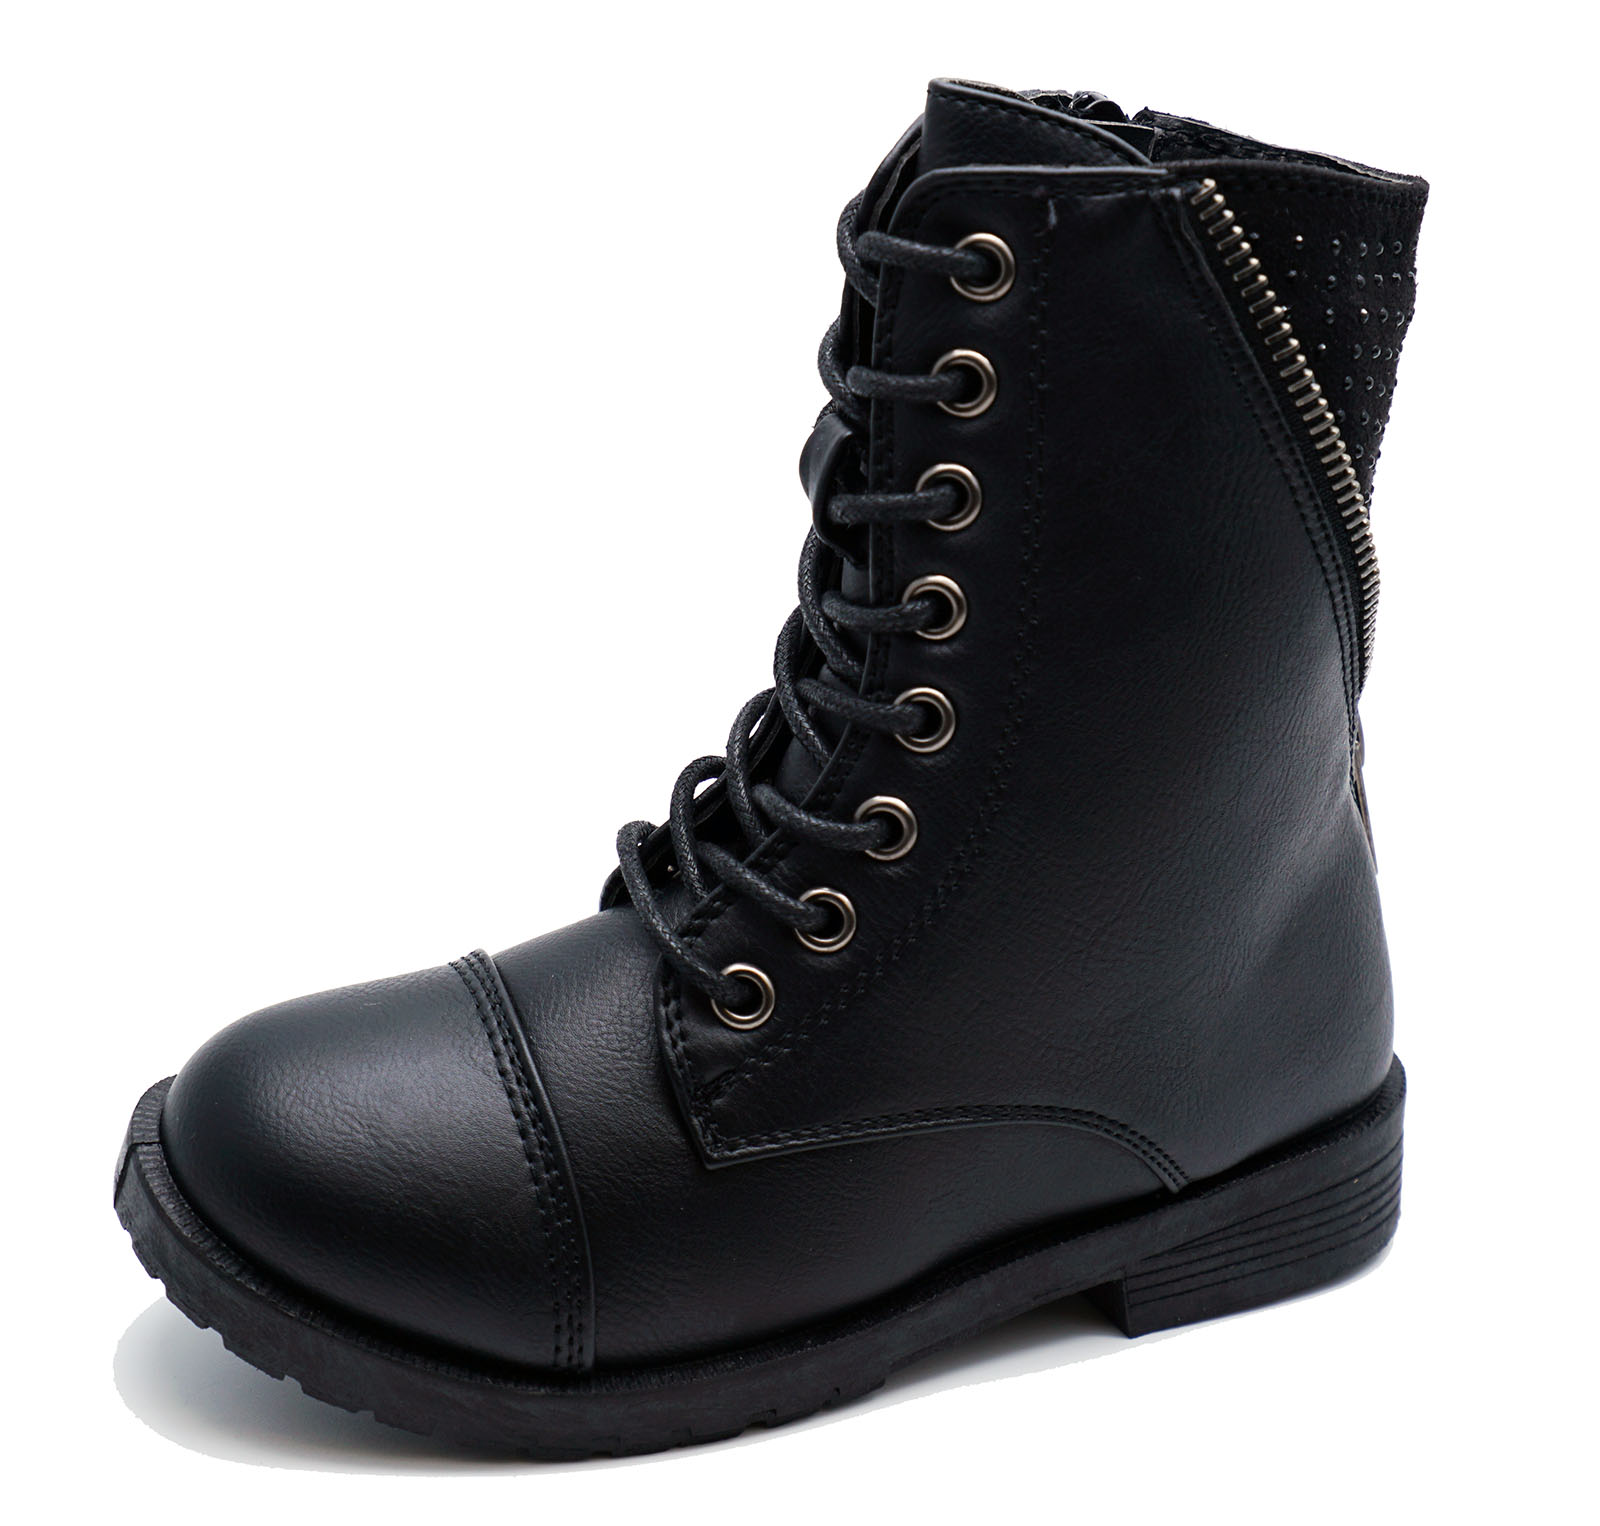 GIRLS CHILDRENS BLACK LACE-UP ZIP-UP CALF WINTER ANKLE BOOTS KIDS SHOES UK 8-13